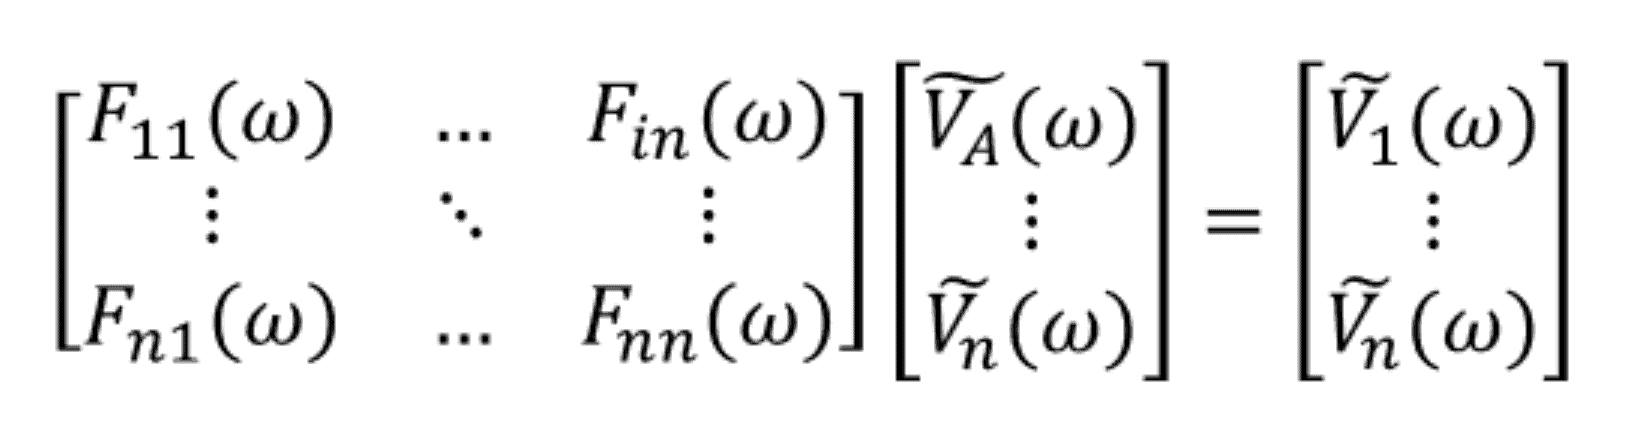 Characteristic matrix equation for nodal analysis in the frequency domain